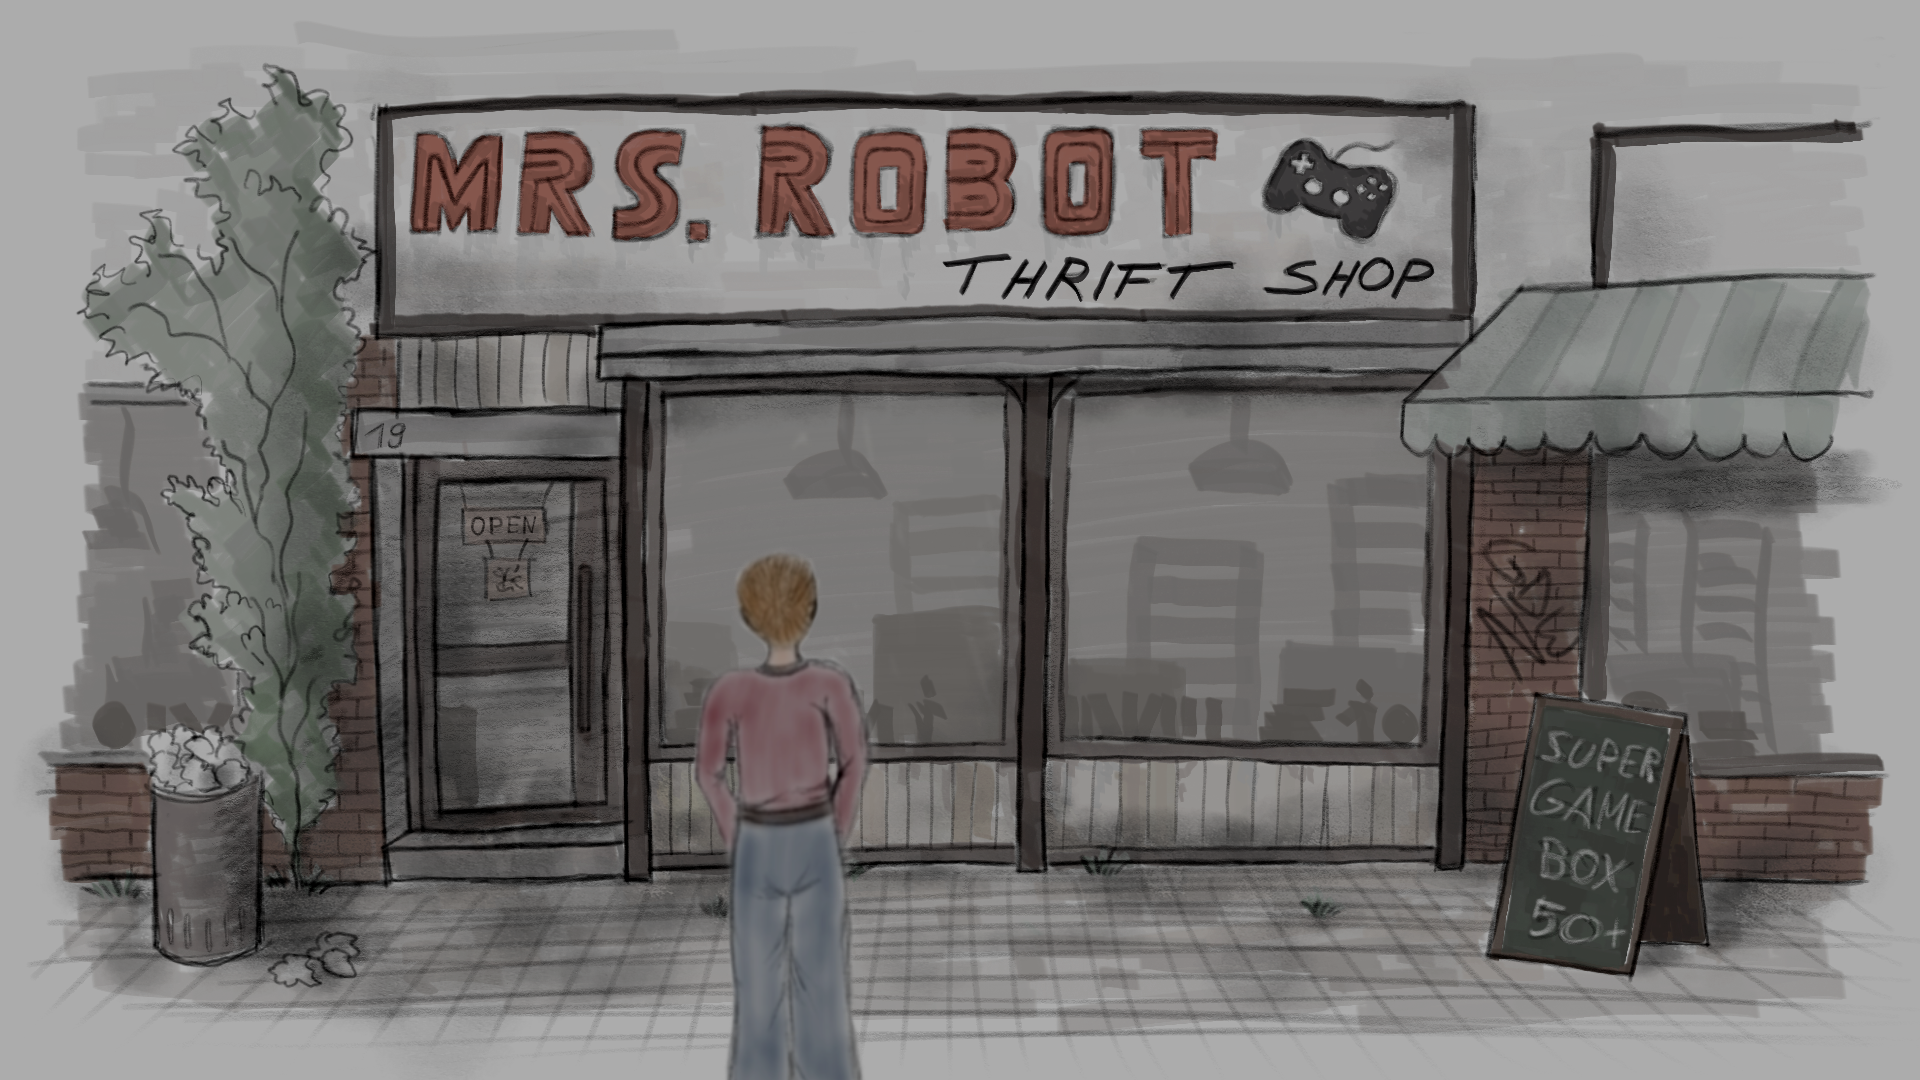 Assets/_Game/MainMenu/Graphics/Story Pictures/Story_Picture_2.png